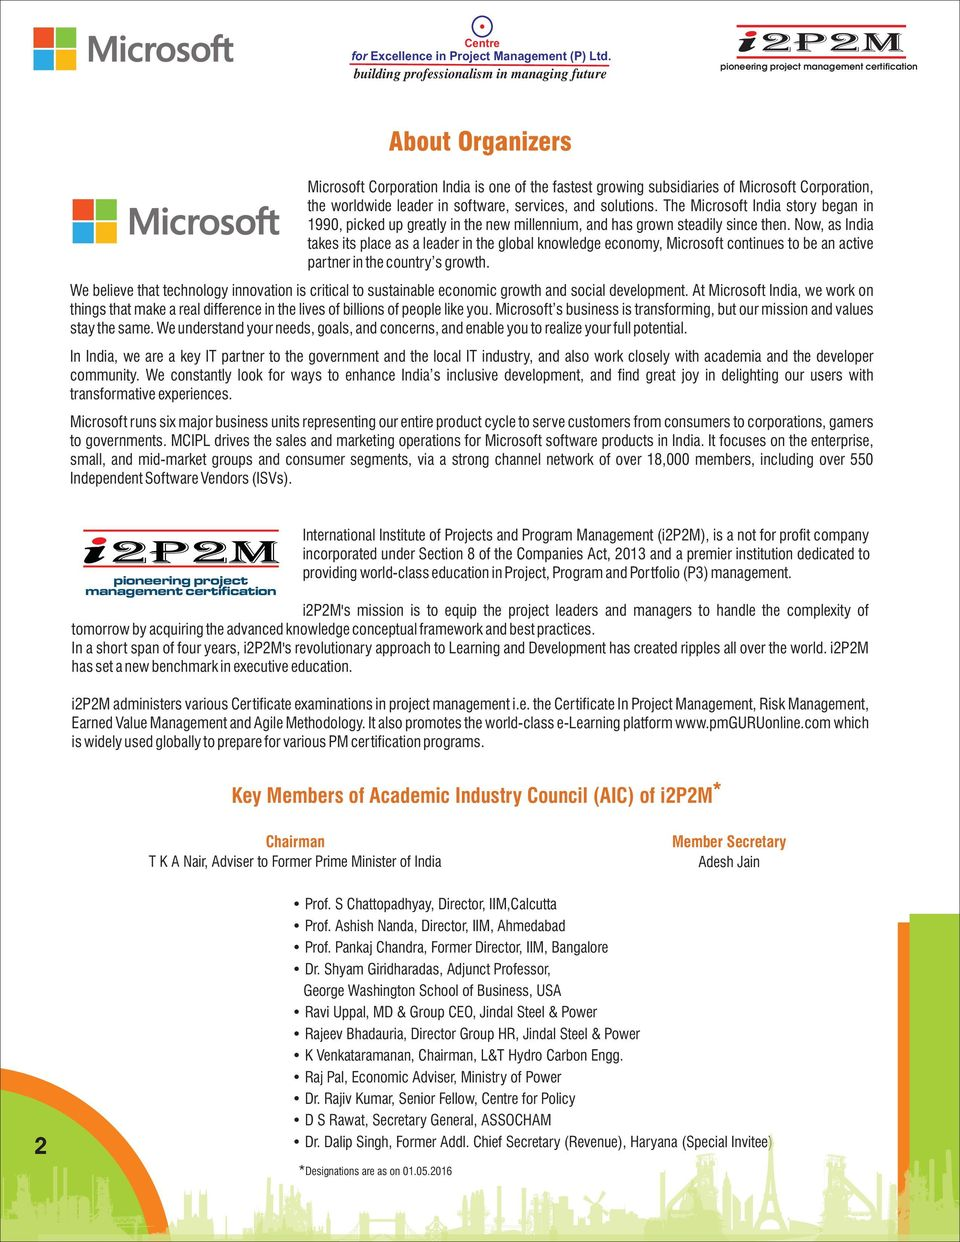 Totality Of Project Management With Specialization In Microsoft